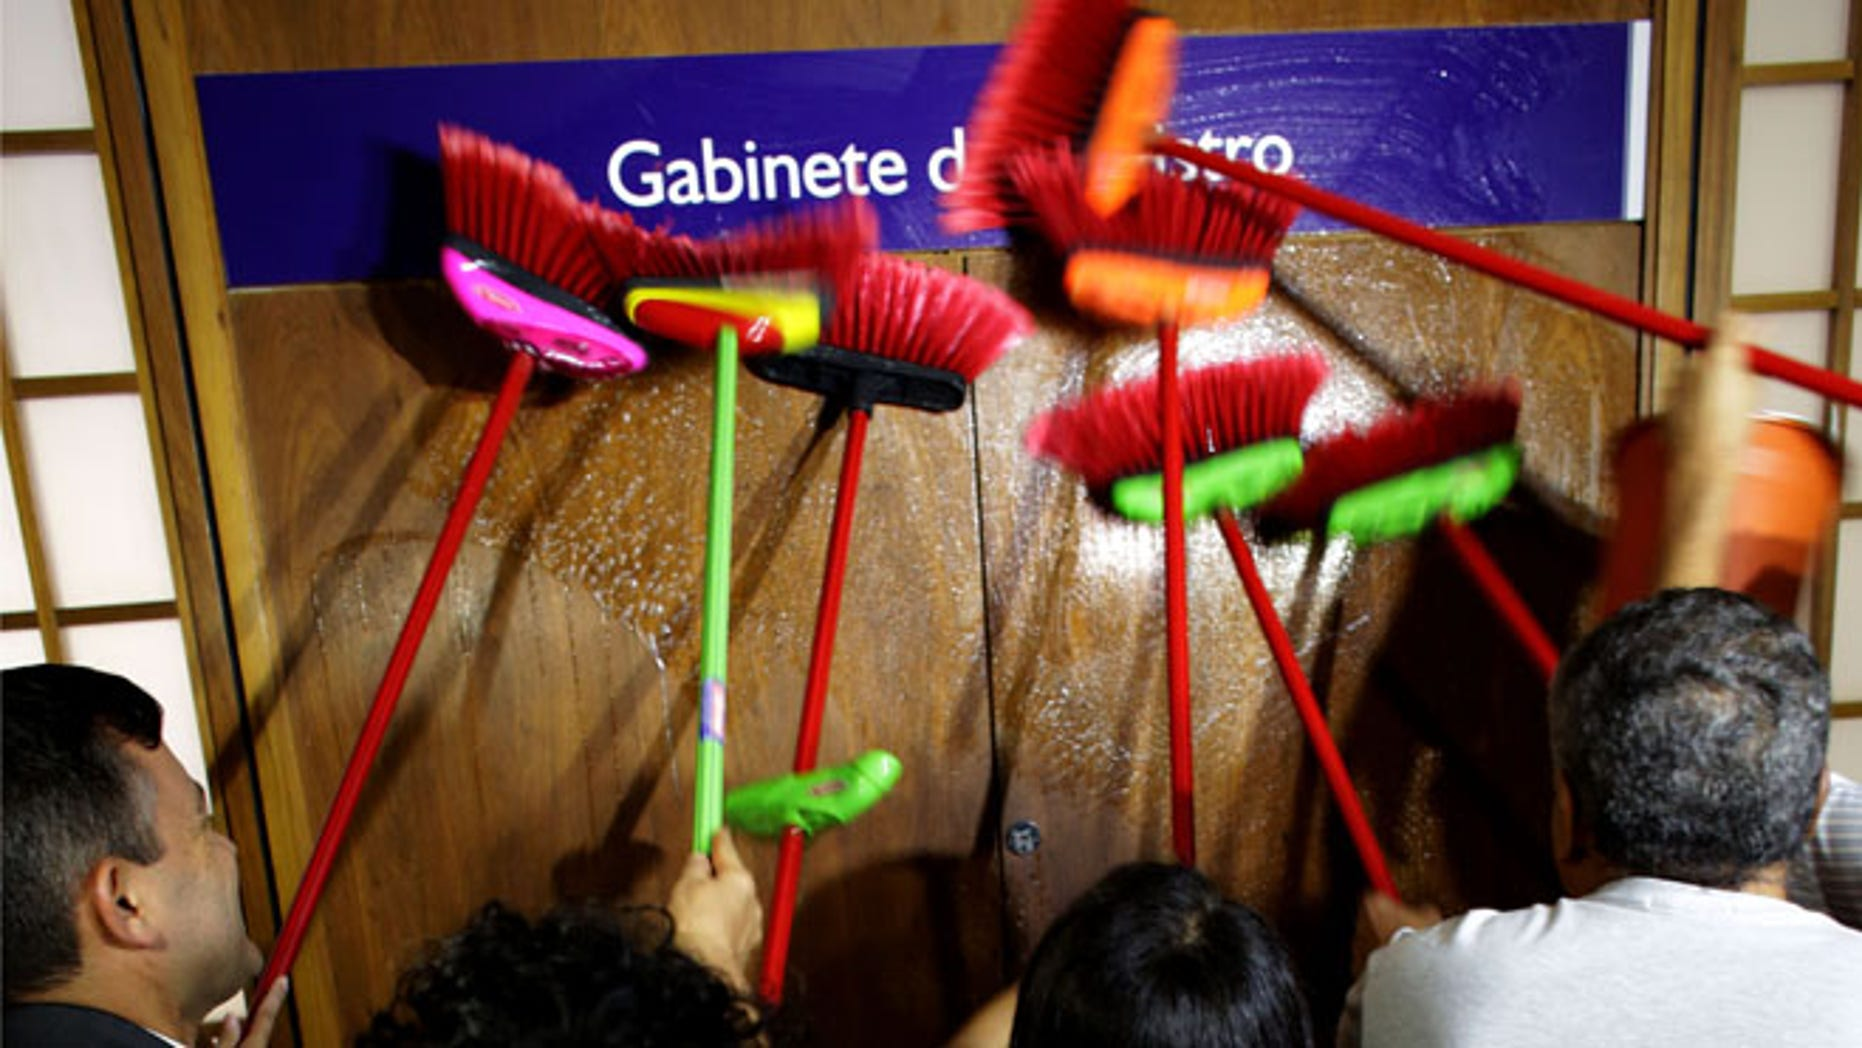 Ministerial staff use brooms to scrub the office door of the Transparency Minister Fabiano Silveira demanding his resignation, in Brasilia, Brazil, Monday, May 30, 2016. A recording TV Globo broadcast late Sunday shows Silveira criticizing Operation Car Wash, a wide-ranging corruption probe of the state oil company Petrobras that has implicated numerous leading Brazilian politicians and businessmen. Protesters in Brazil use brooms as a representation to sweep away corruption. (AP Photo/Eraldo Peres)